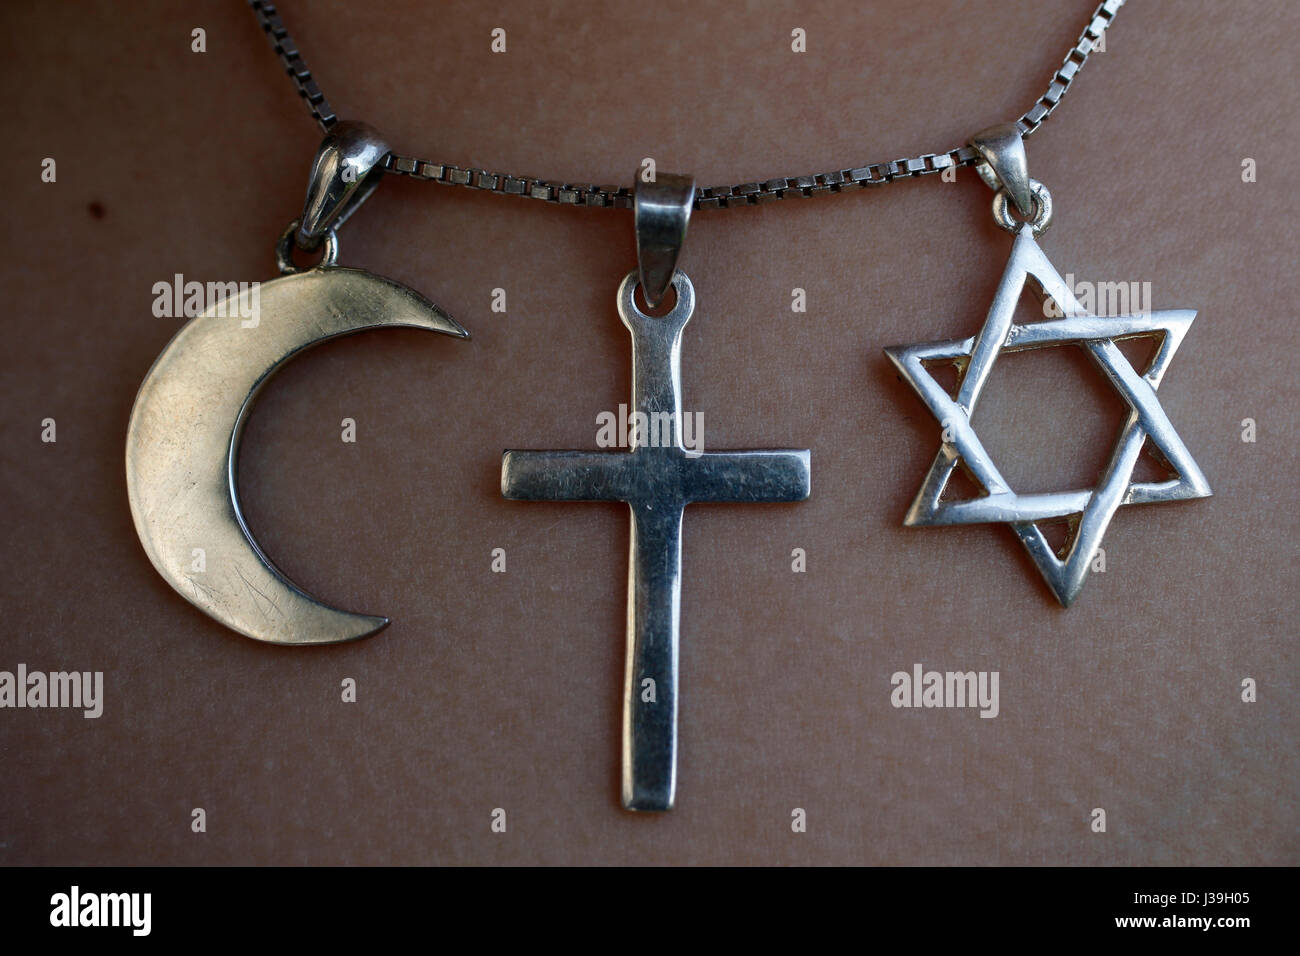 christian islam and judaism Types of religion is an online educational resource for all the religions of the world learn about christianity, islam, hinduism, buddhism, and more.